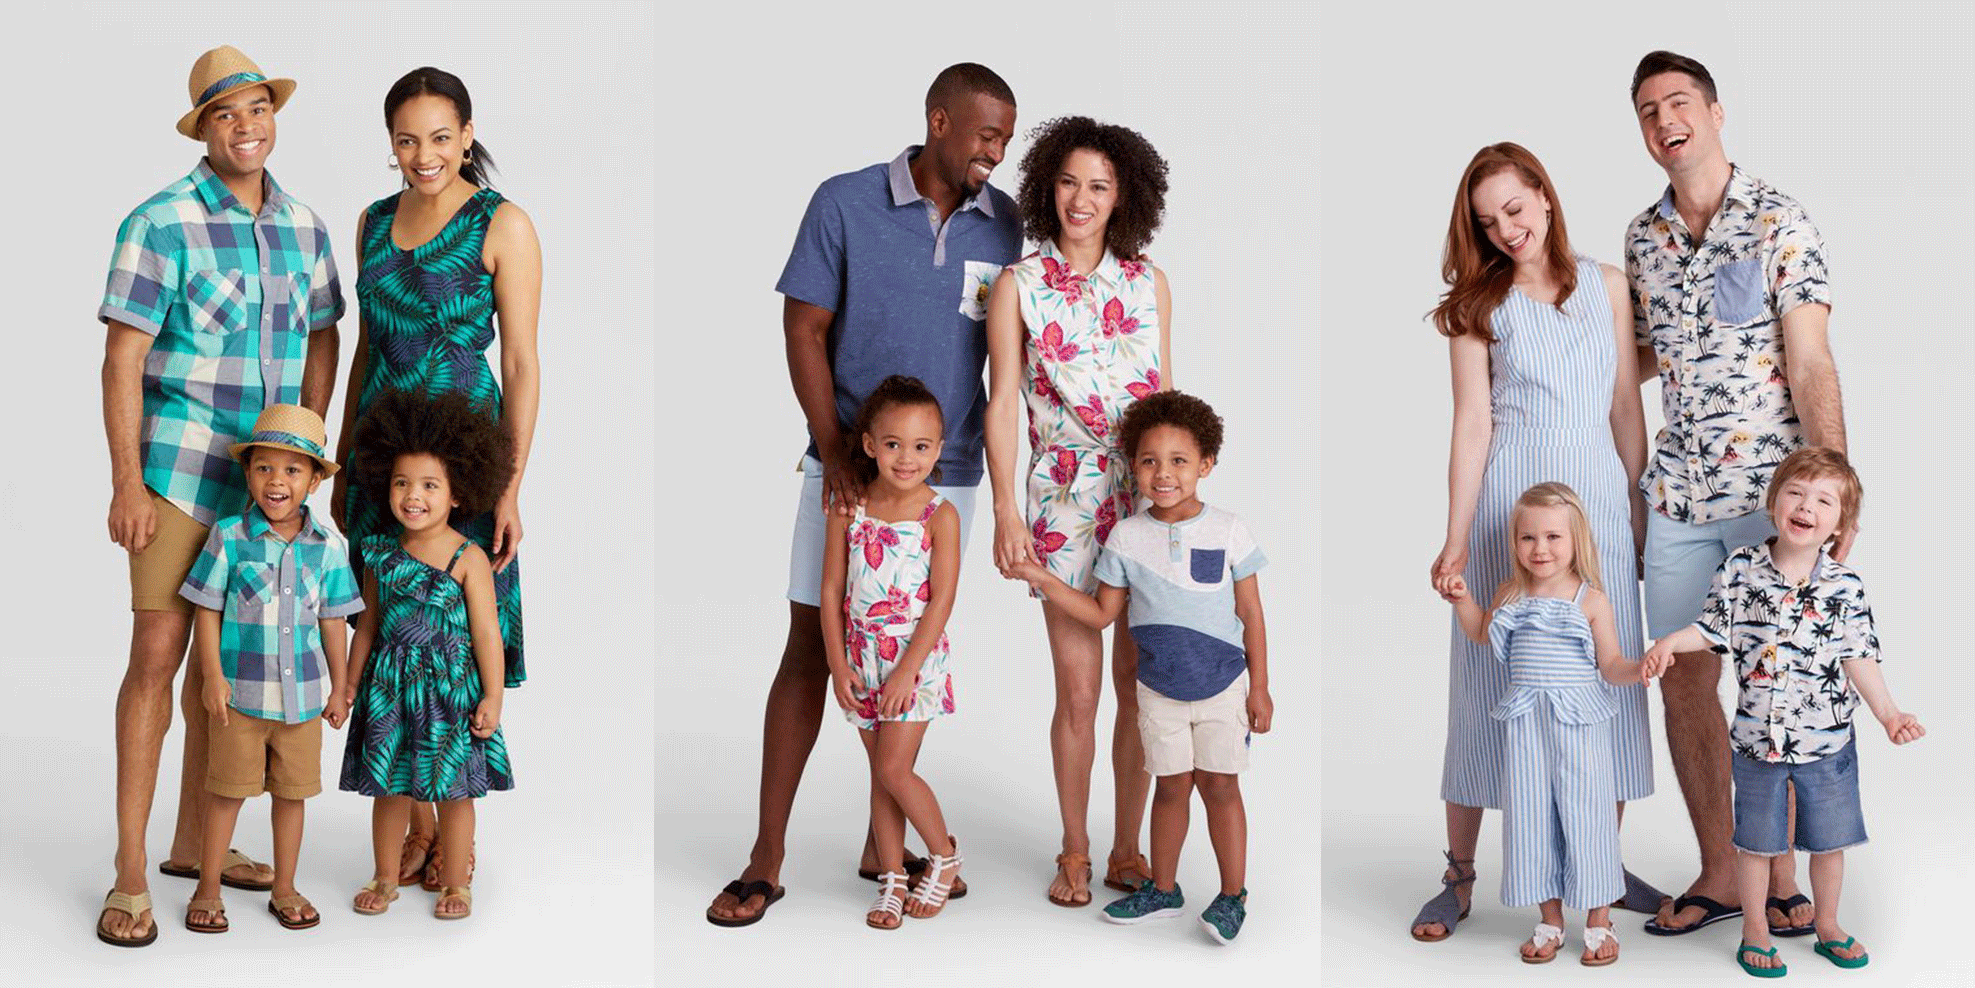 c6644d71cac81 Target Now Sells Matching Family Outfits That Are Actually So Cute